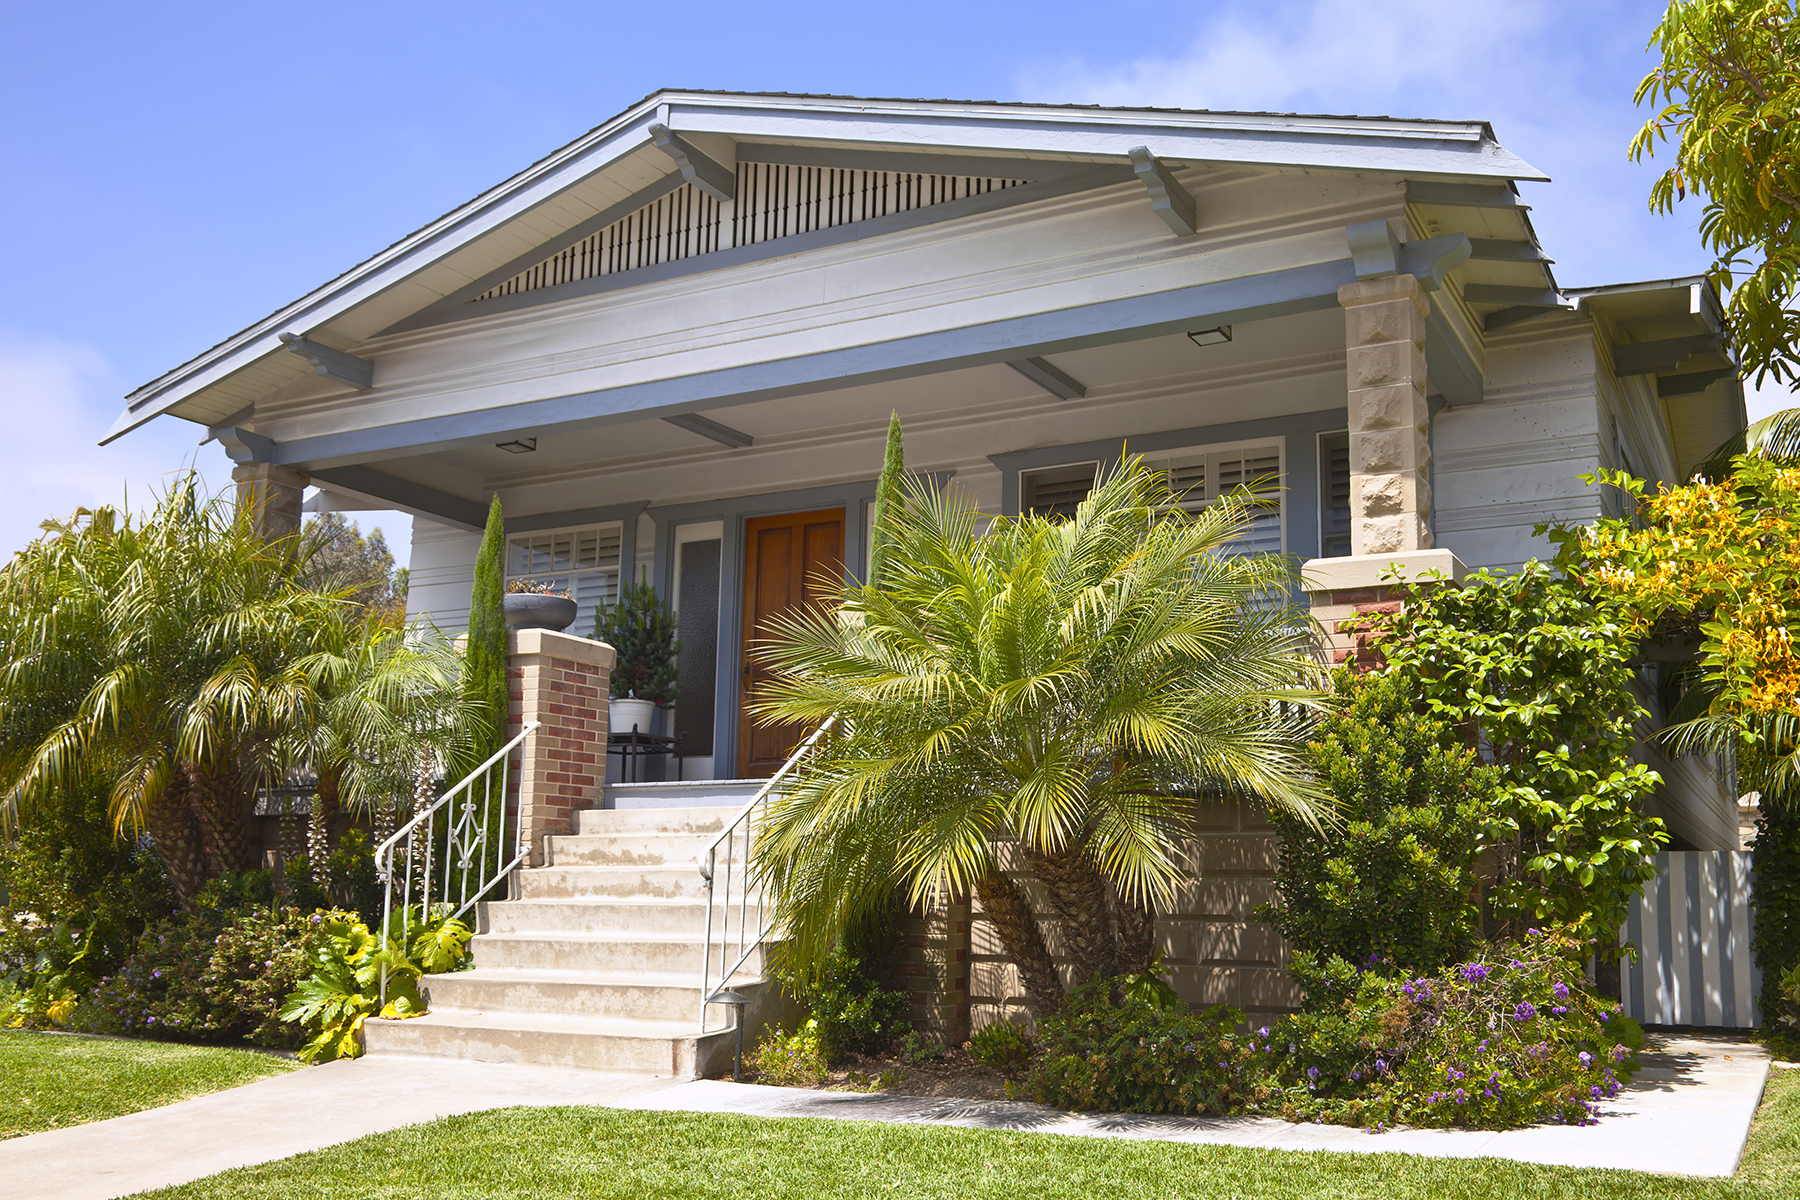 California Home Appraisal